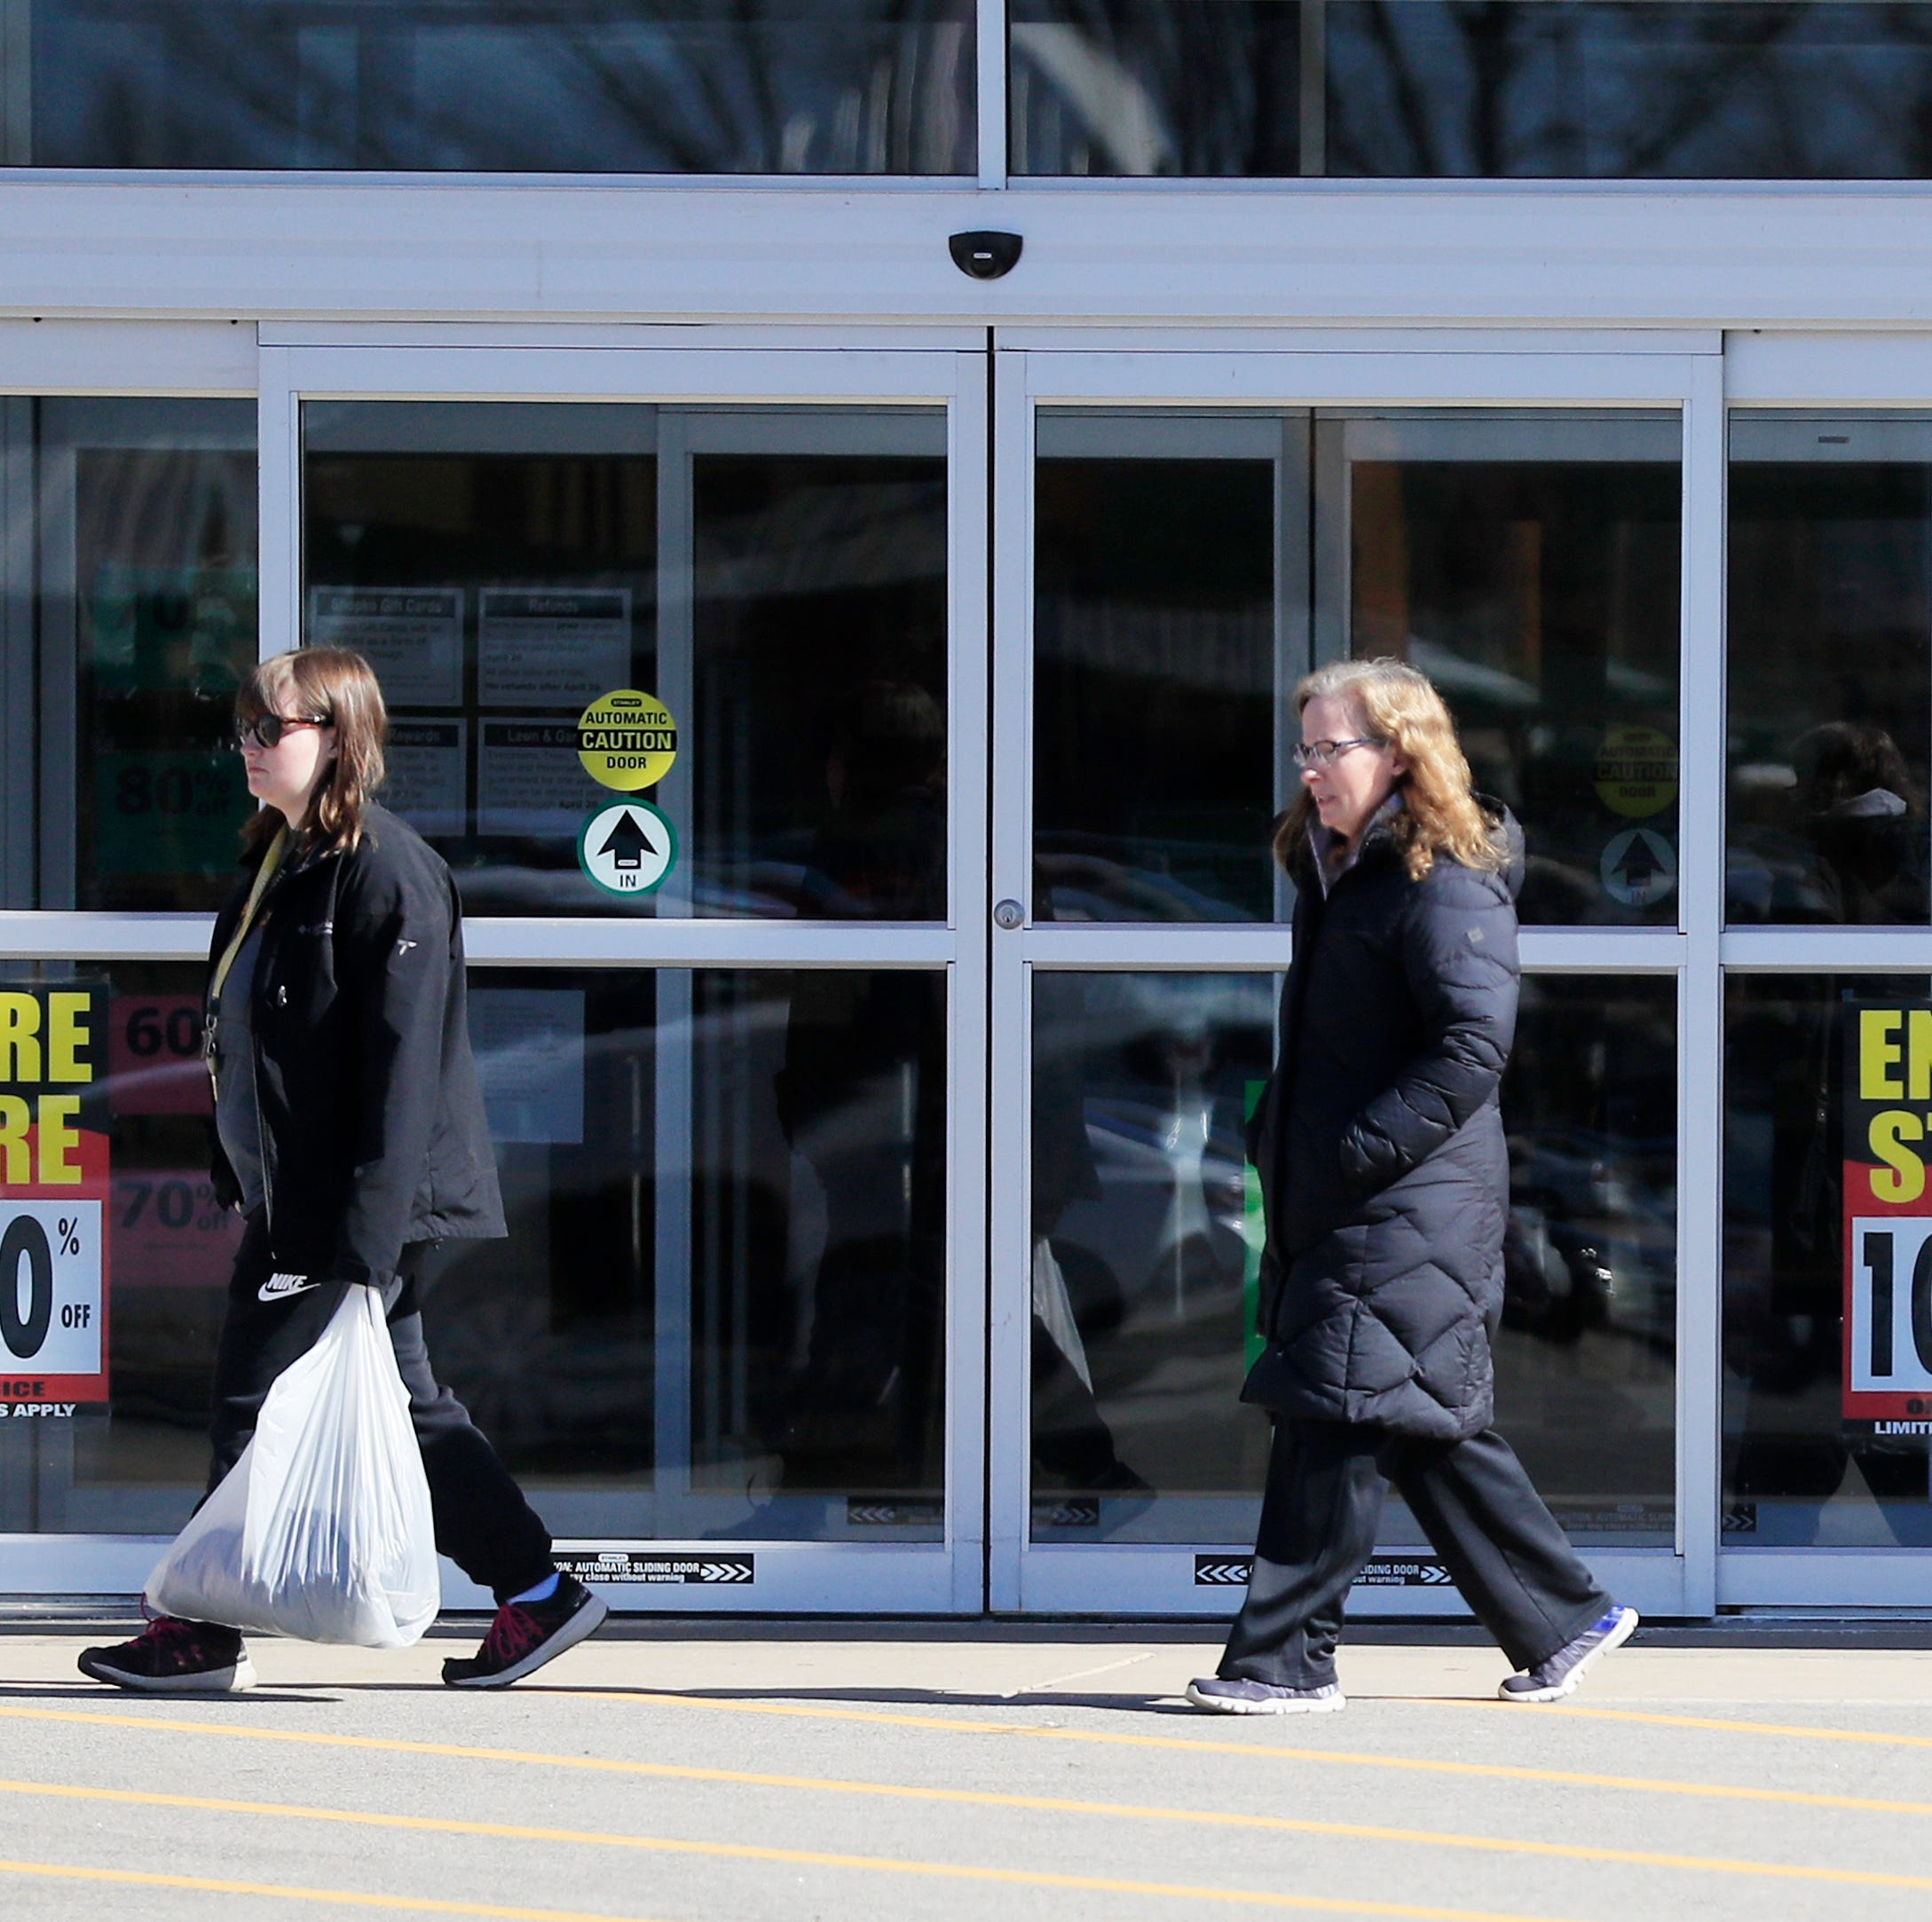 Shopko closures: Customers' takes on why the once-popular retailer is going out of business